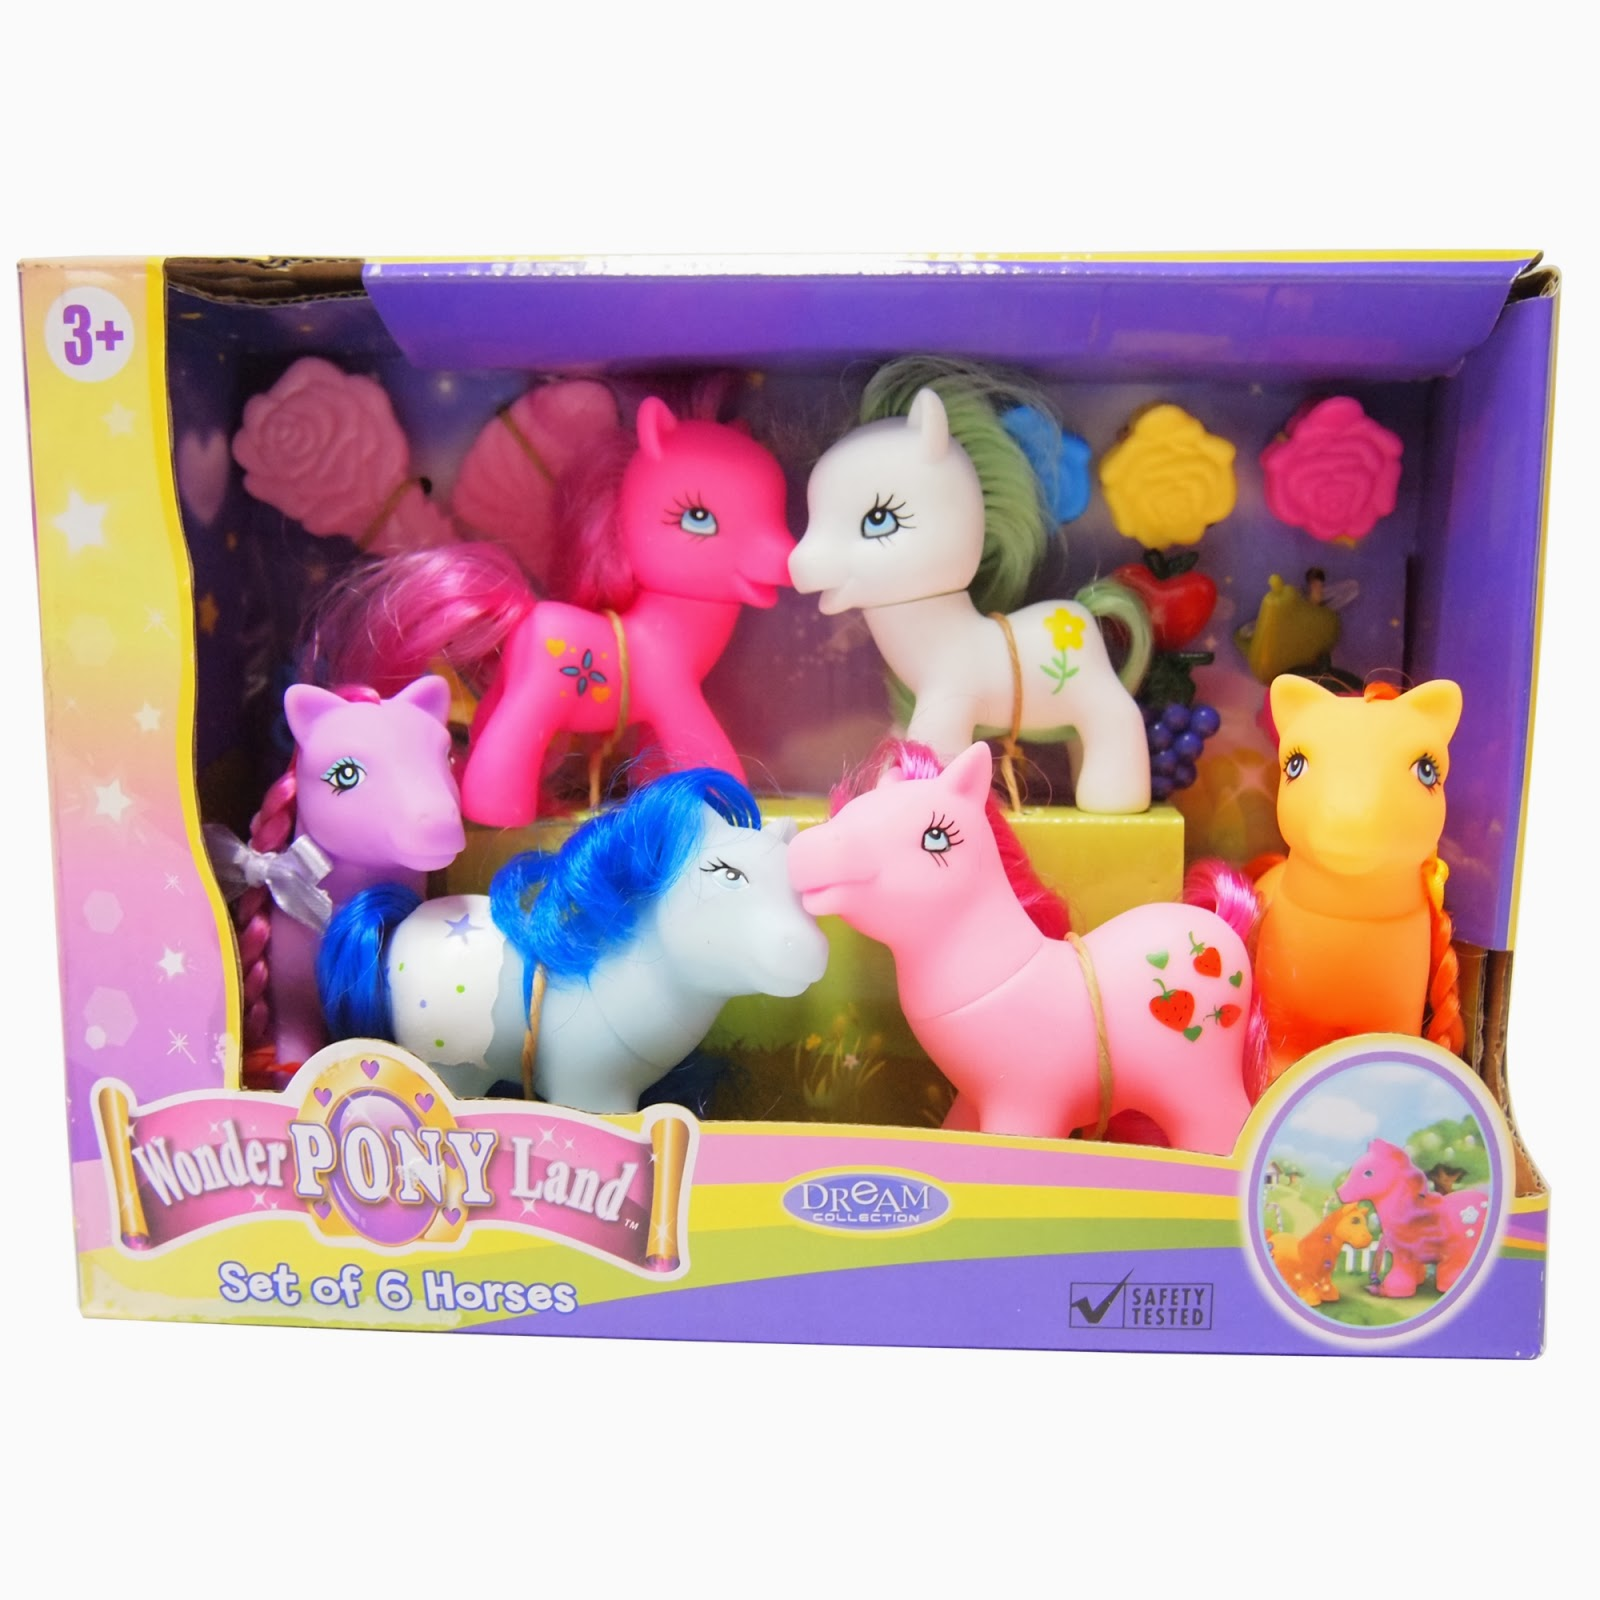 http://www.awin1.com/cread.php?awinmid=4160&awinaffid=179887&clickref=&p=http%3A%2F%2Fdirect.asda.com%2FWonder-Pony-Land---6-Pony-Set%2F000702985%2Cdefault%2Cpd.html